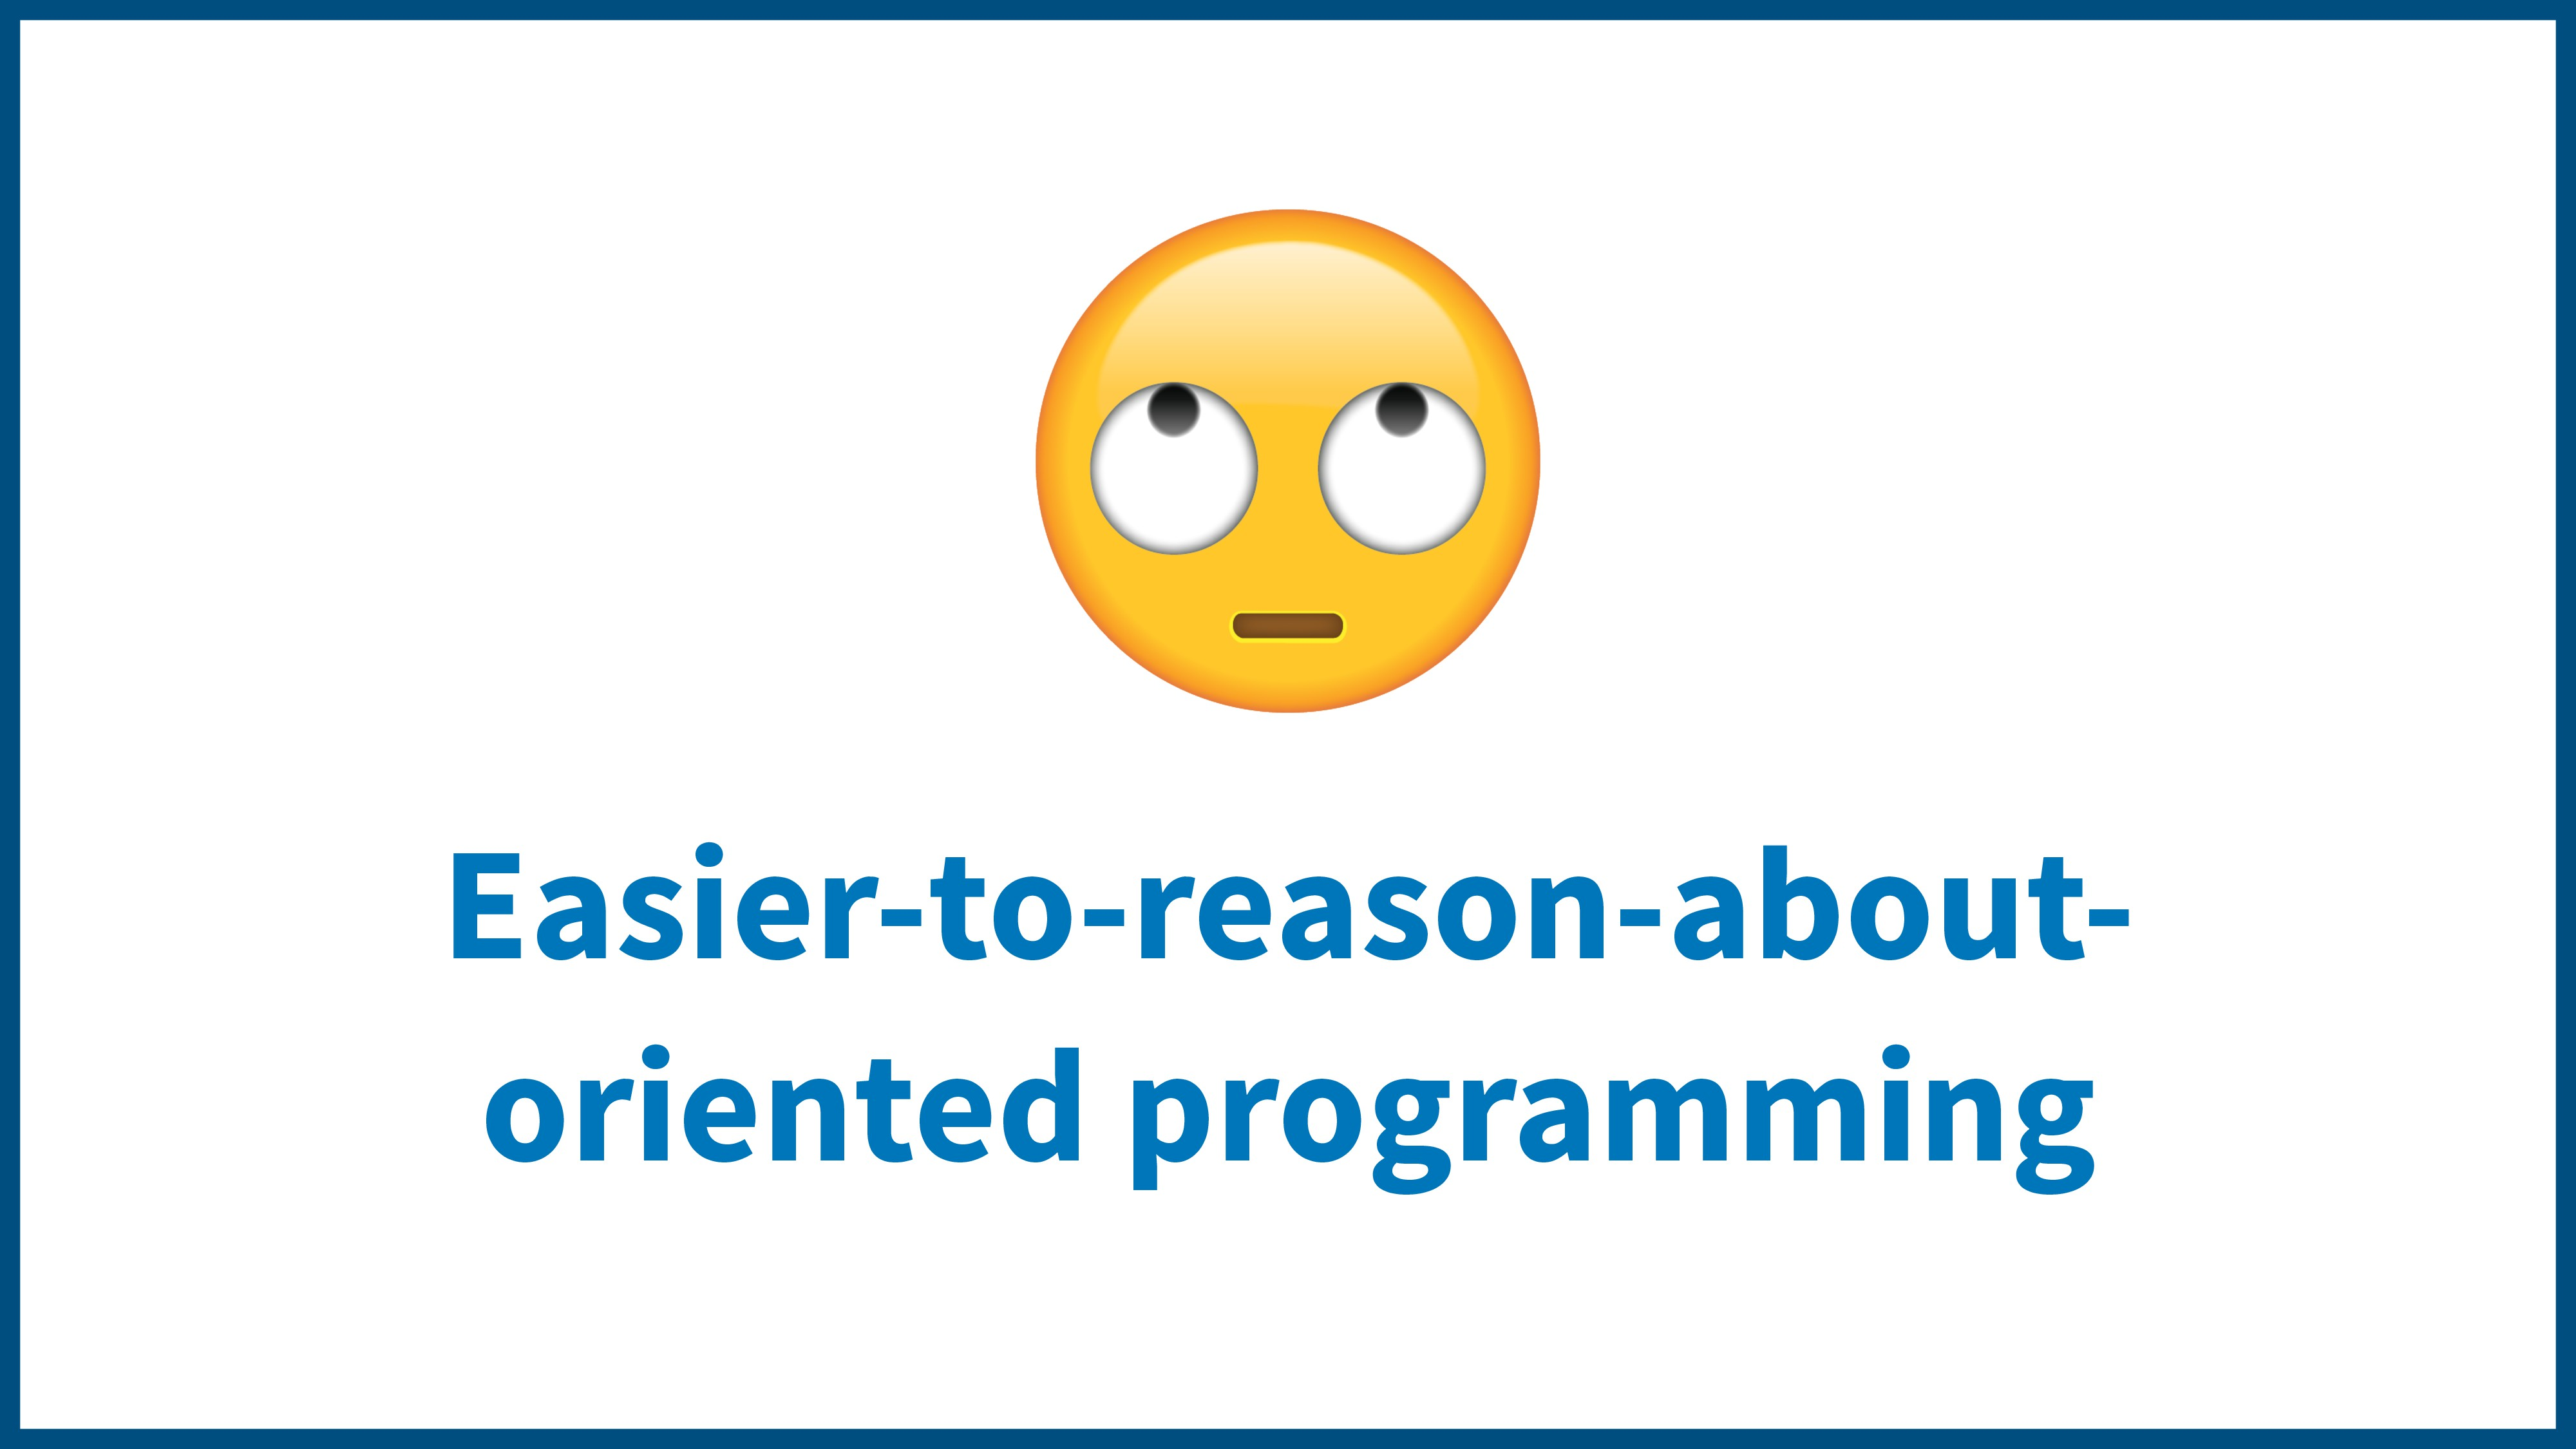 Easier-to-reason-about- oriented programming